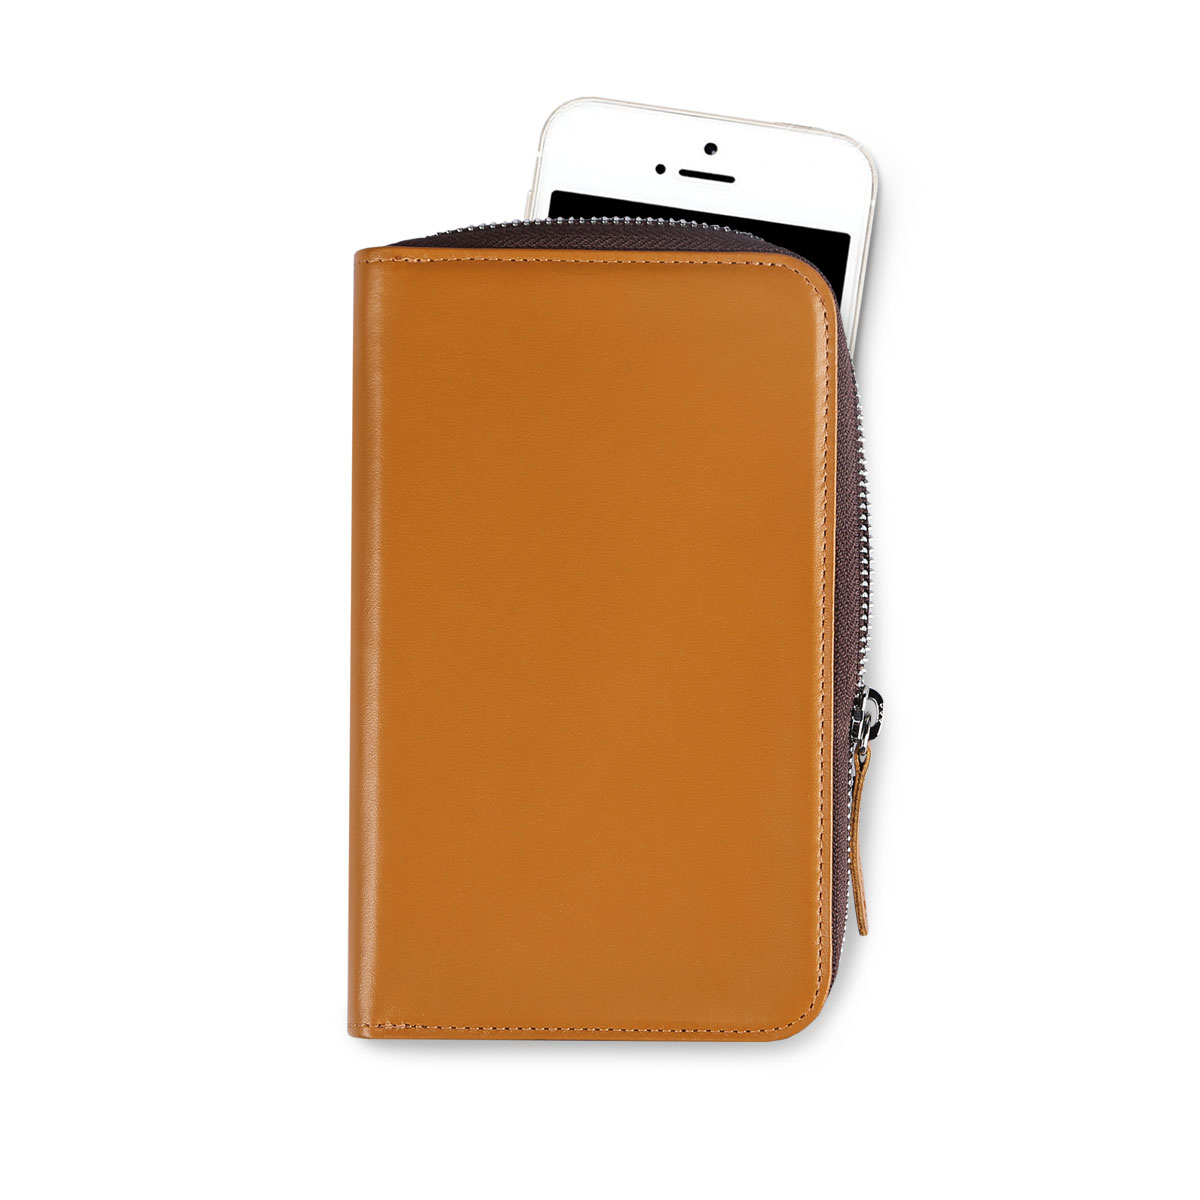 Daily Phone Pocket +_Camel